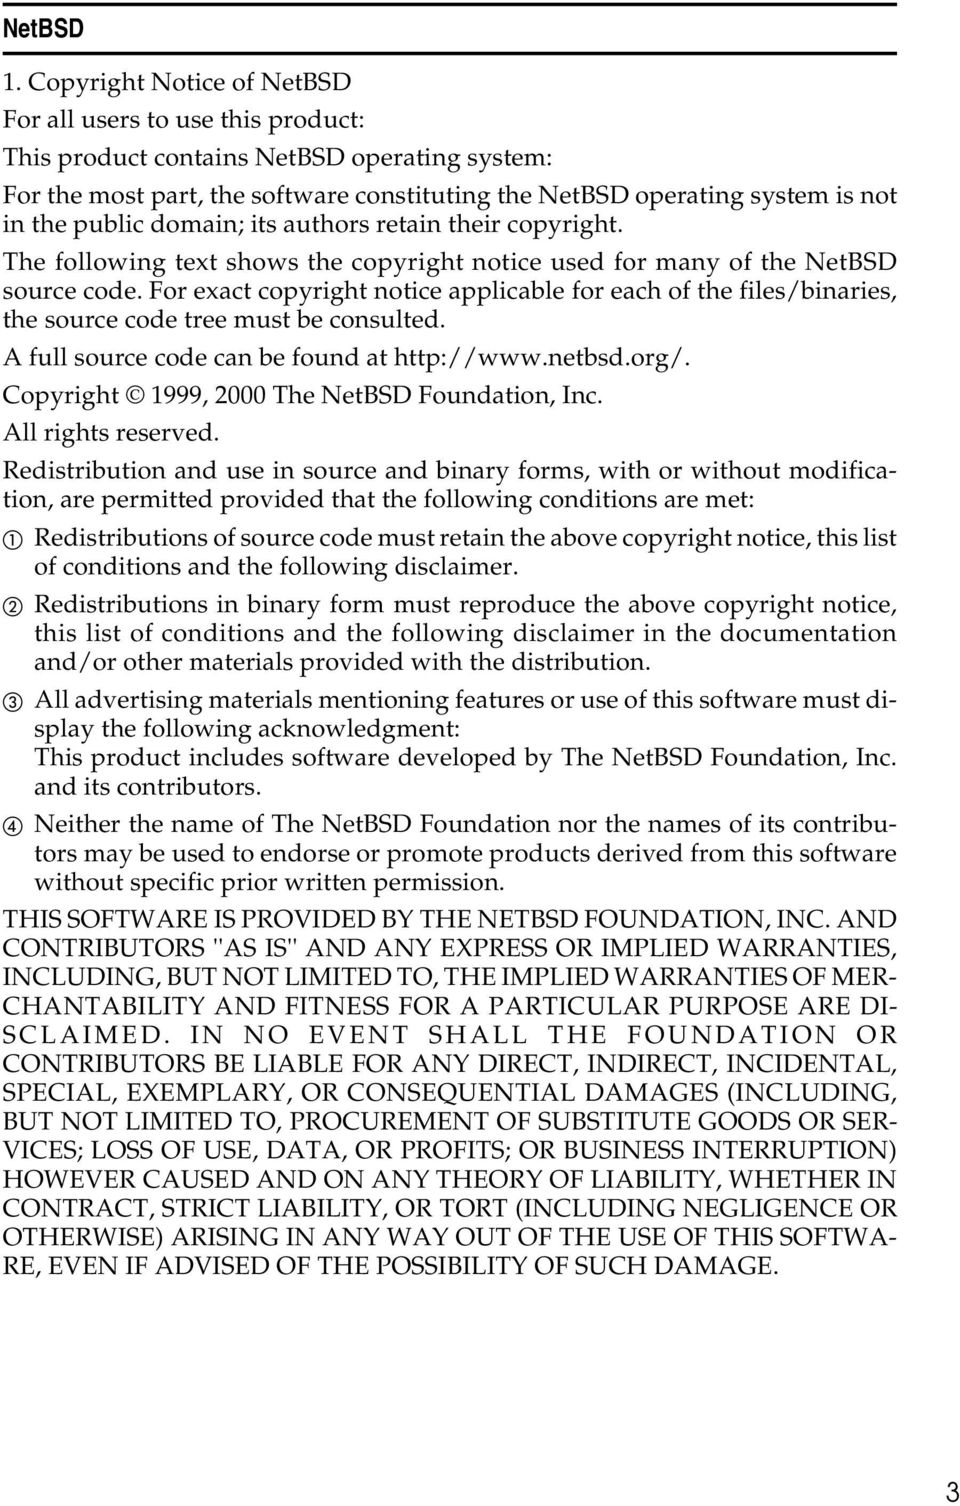 public domain; its authors retain their copyright. The following text shows the copyright notice used for many of the NetBSD source code.